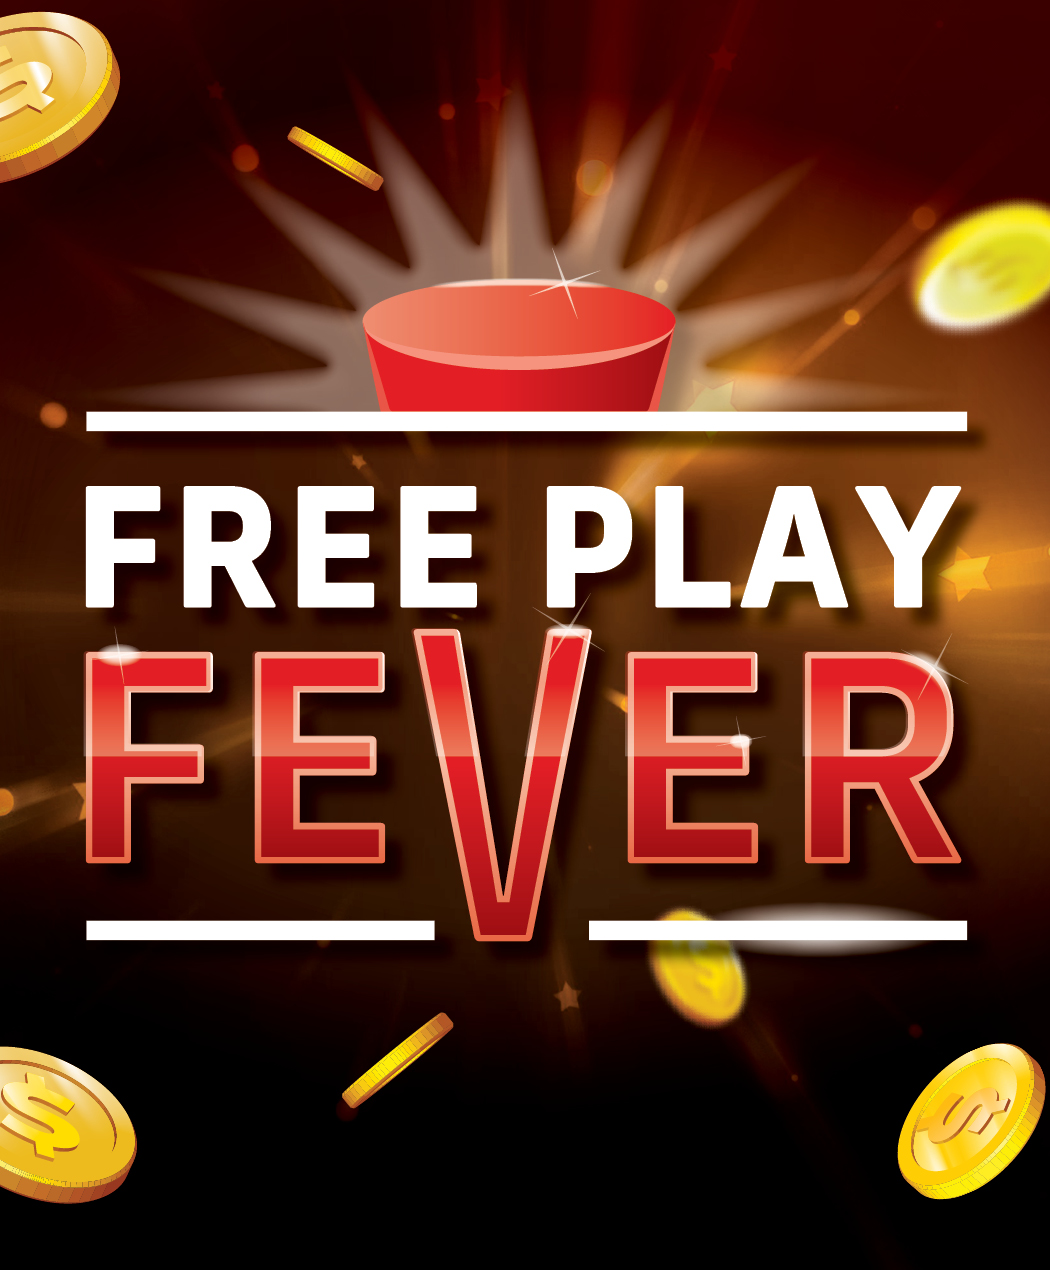 Free Play Fever